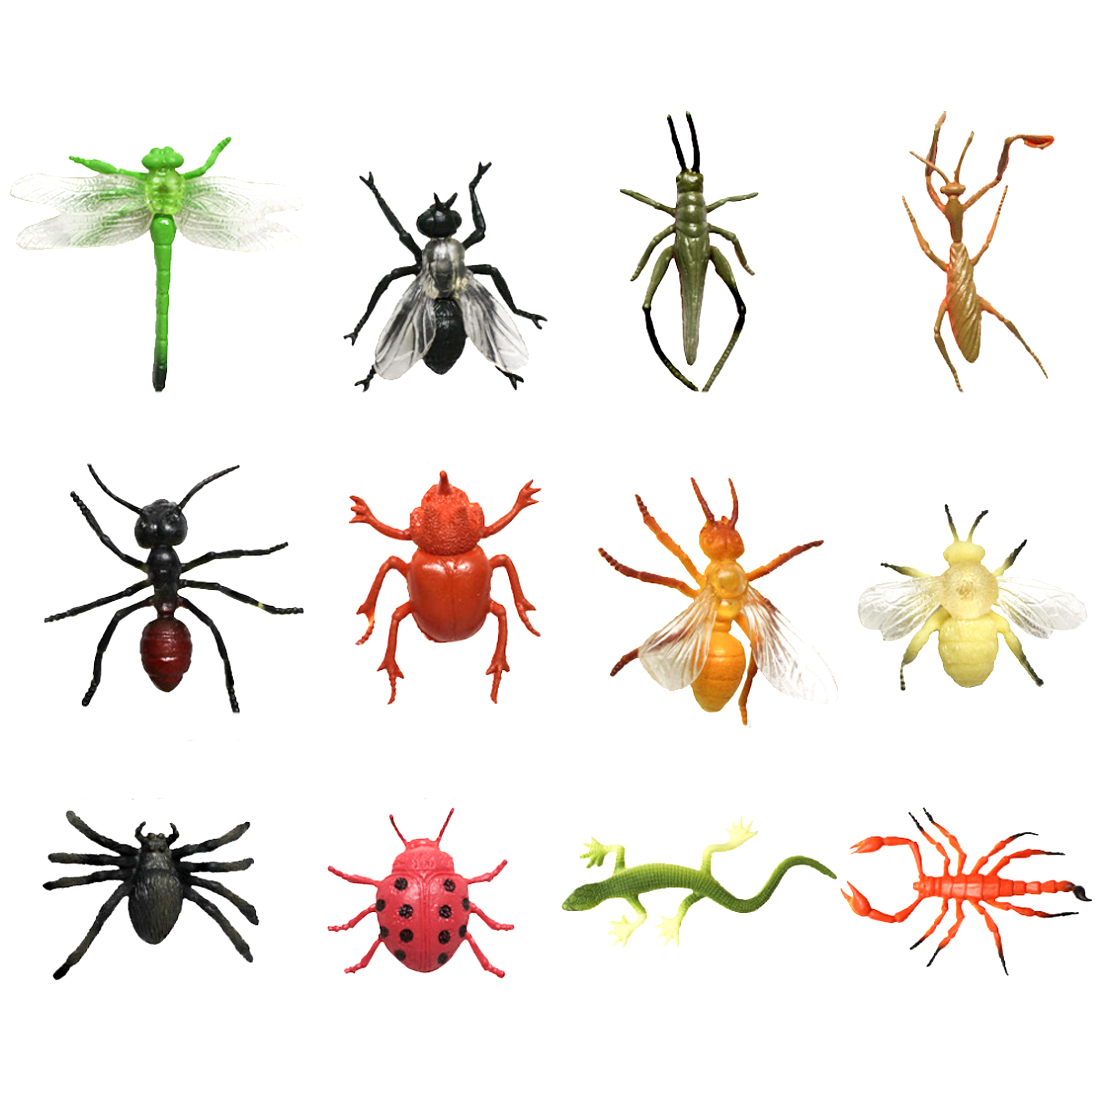 2 Types 12/24pcs Plastic Simulation Bee Dragonfly Spider Toys Insect Ladybird Locust Lizard Models Figurines Educational Set